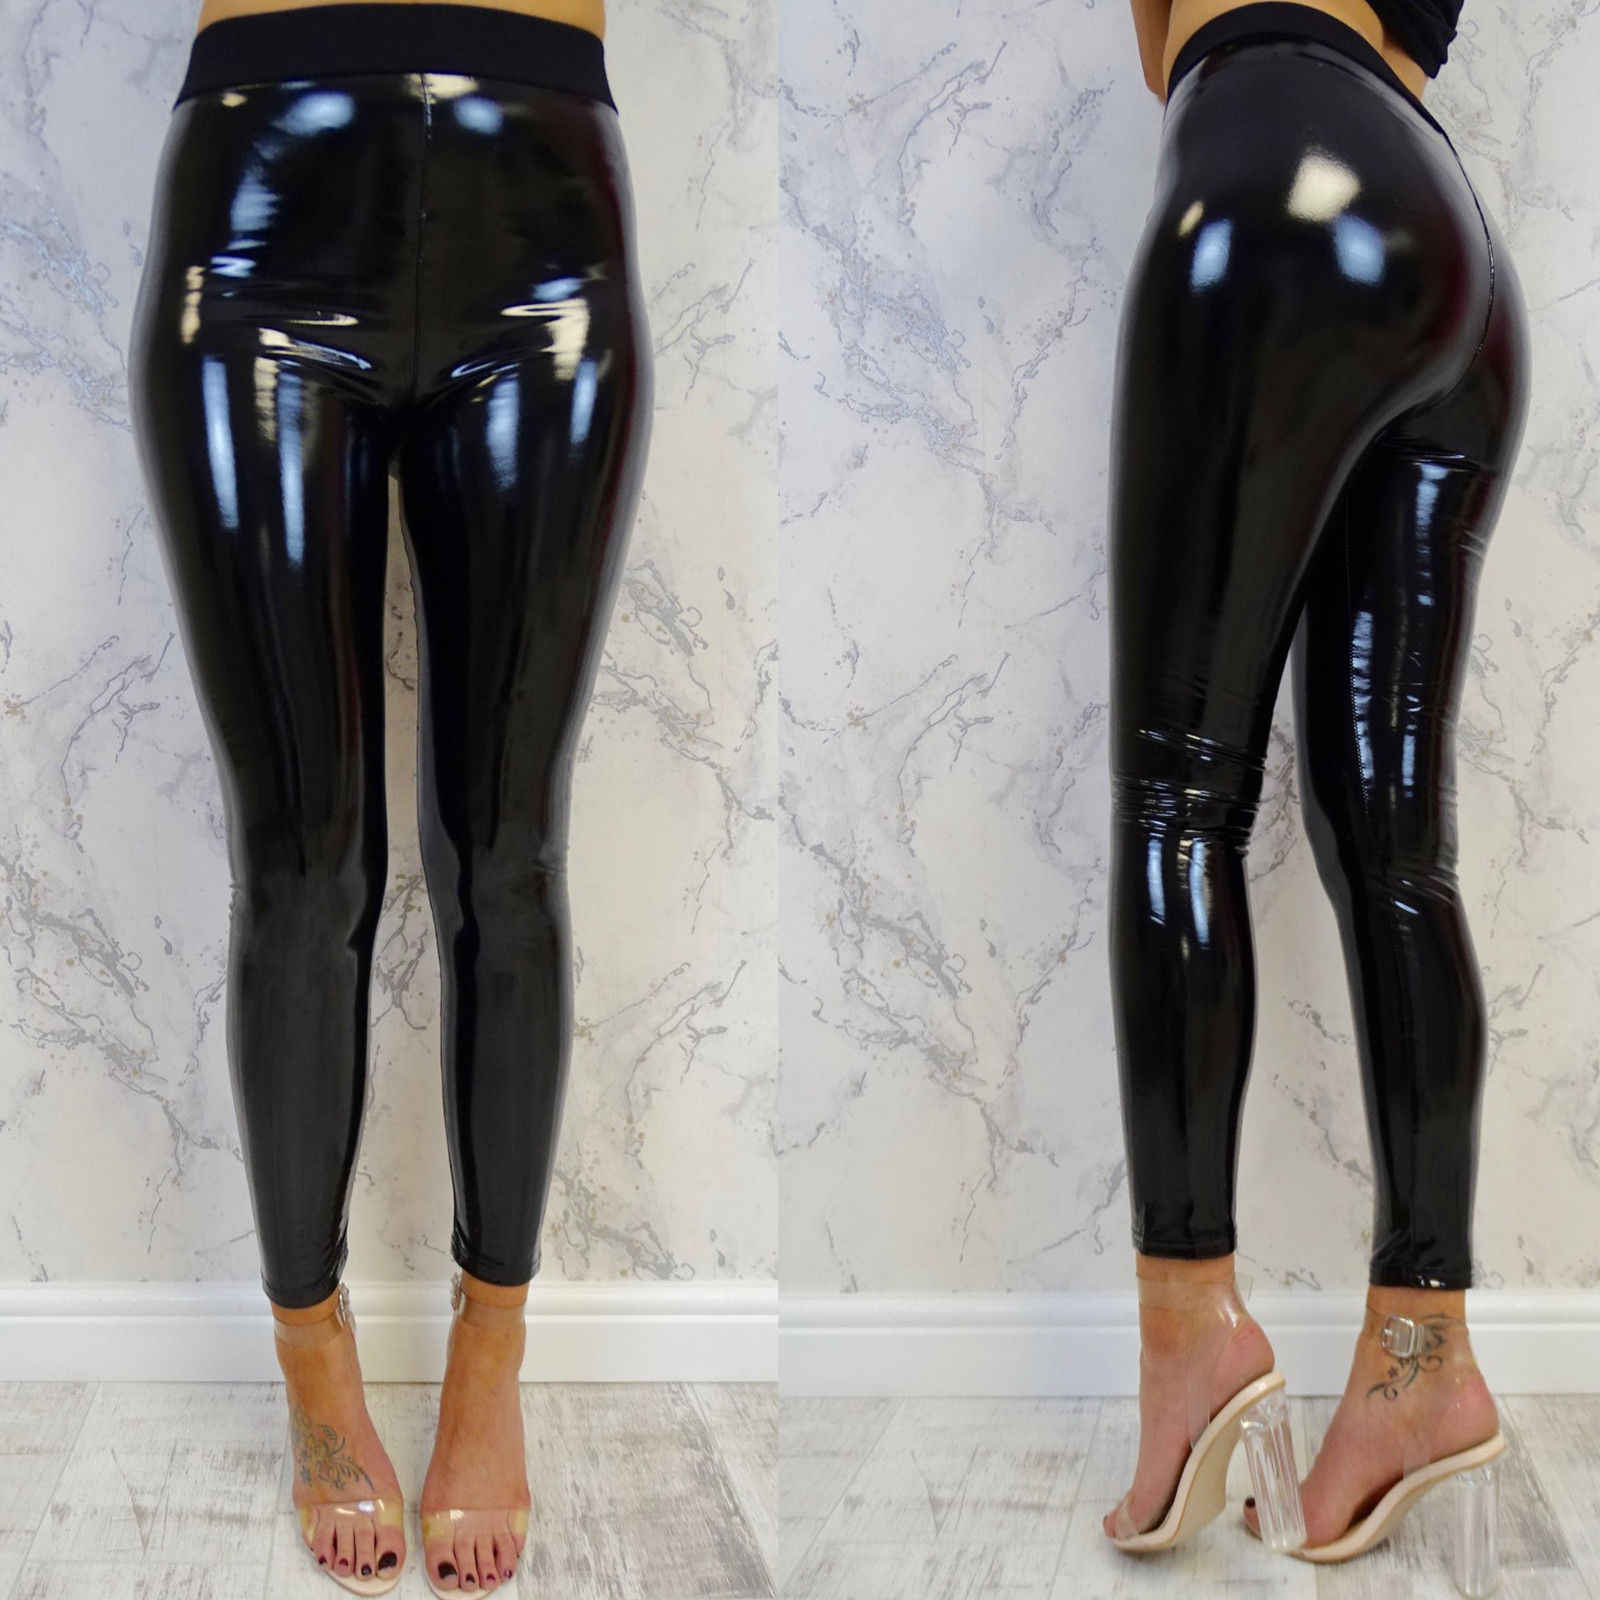 dba57760b7 Detail Feedback Questions about Pants Women High Waist PU Leather Pant  Black Leggings Female Shinny Stretch Pencil Pants Elastic Trousers Female  Clothes on ...